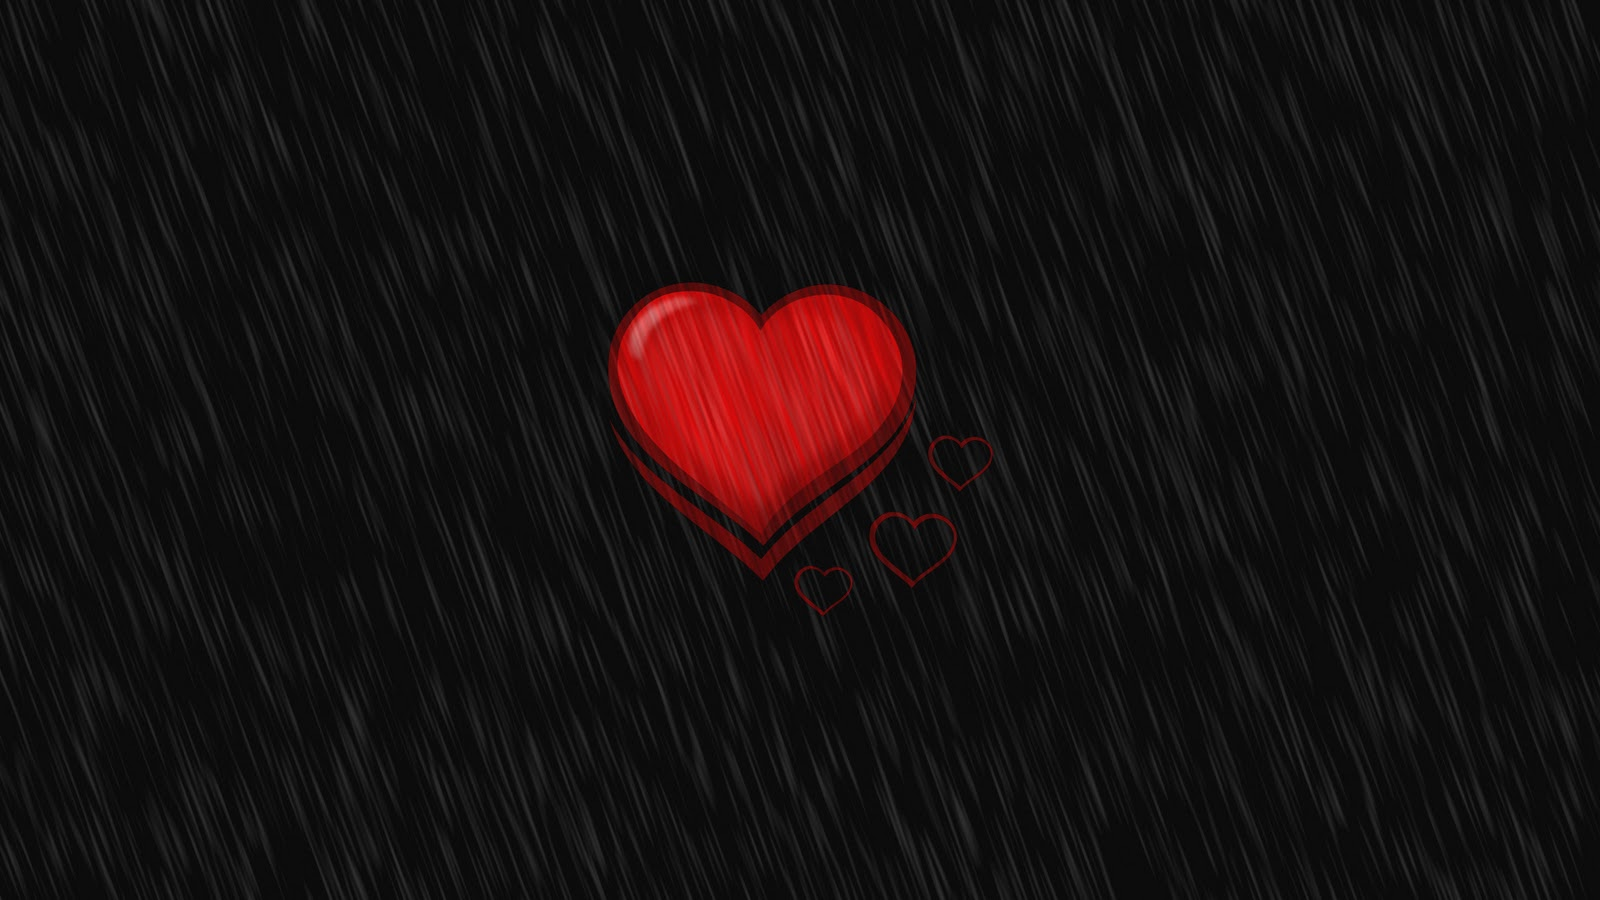 Life for sms love hd wallpapers 8 - Love life wallpaper hd ...